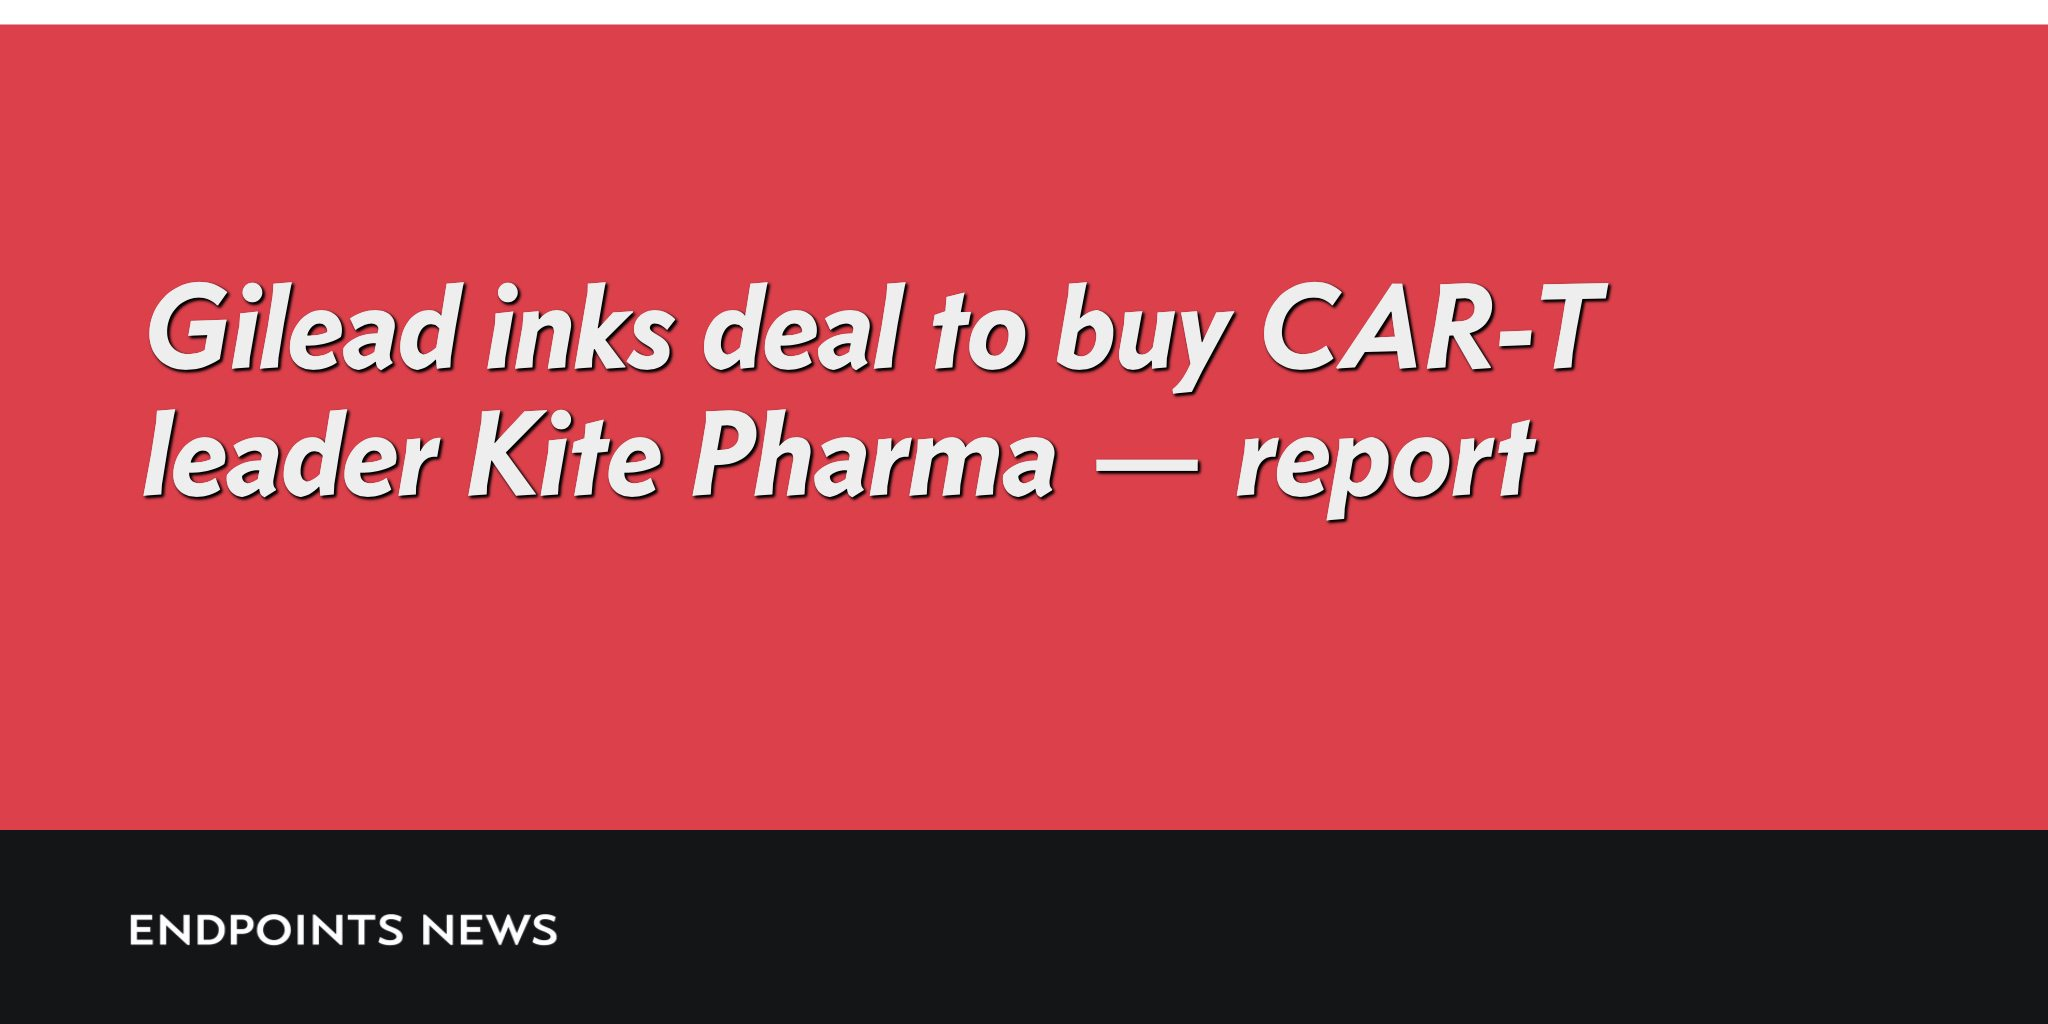 Gilead to buy Kite Pharma for about $12 billion